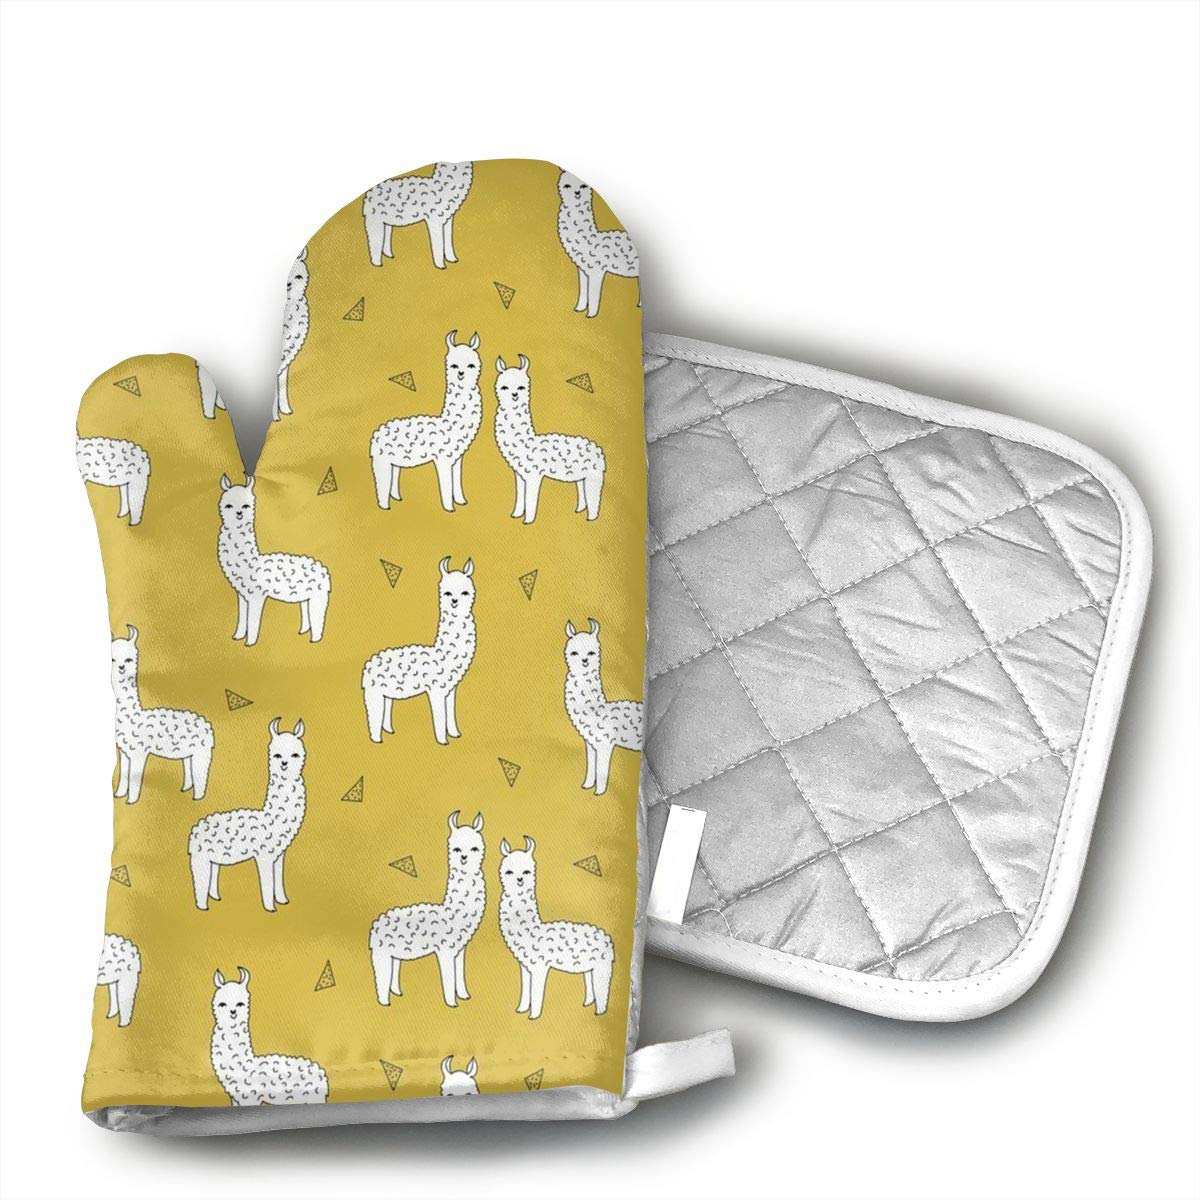 TRENDCAT Llama Alpaca Mustard Yellow Oven Mitts and Potholders (2-Piece Sets) - Extra Long Professional Heat Resistant Pot Holder & Baking Gloves - Food Safe